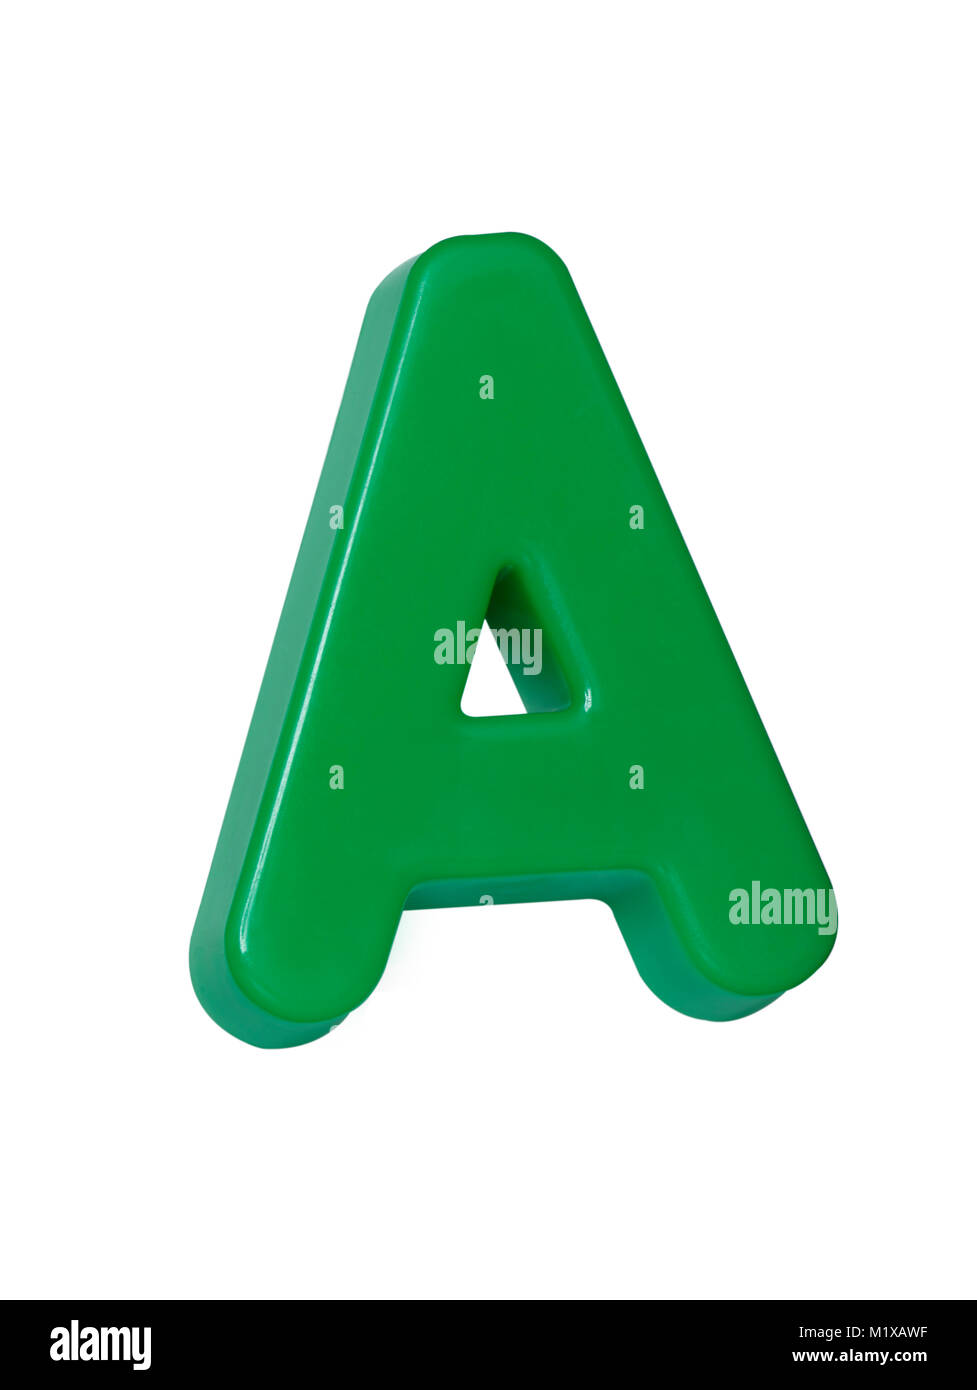 A cut out shot of a green plastic letter 'A' - Stock Image